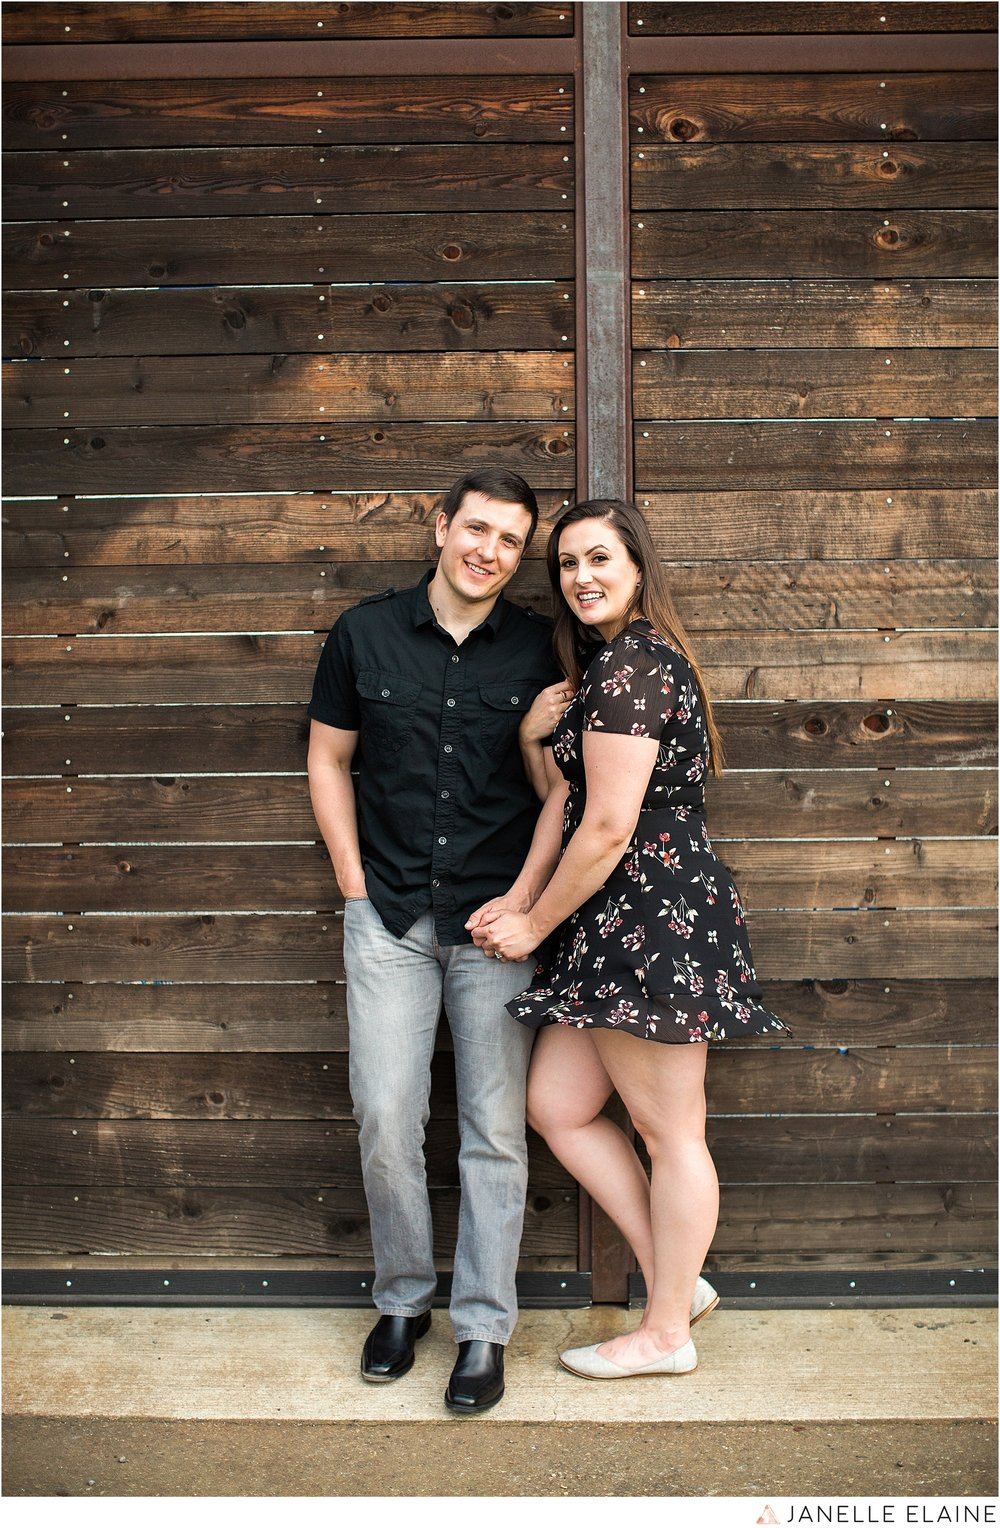 karen ethan-georgetown engagement photos-seattle-janelle elaine photography-89.jpg